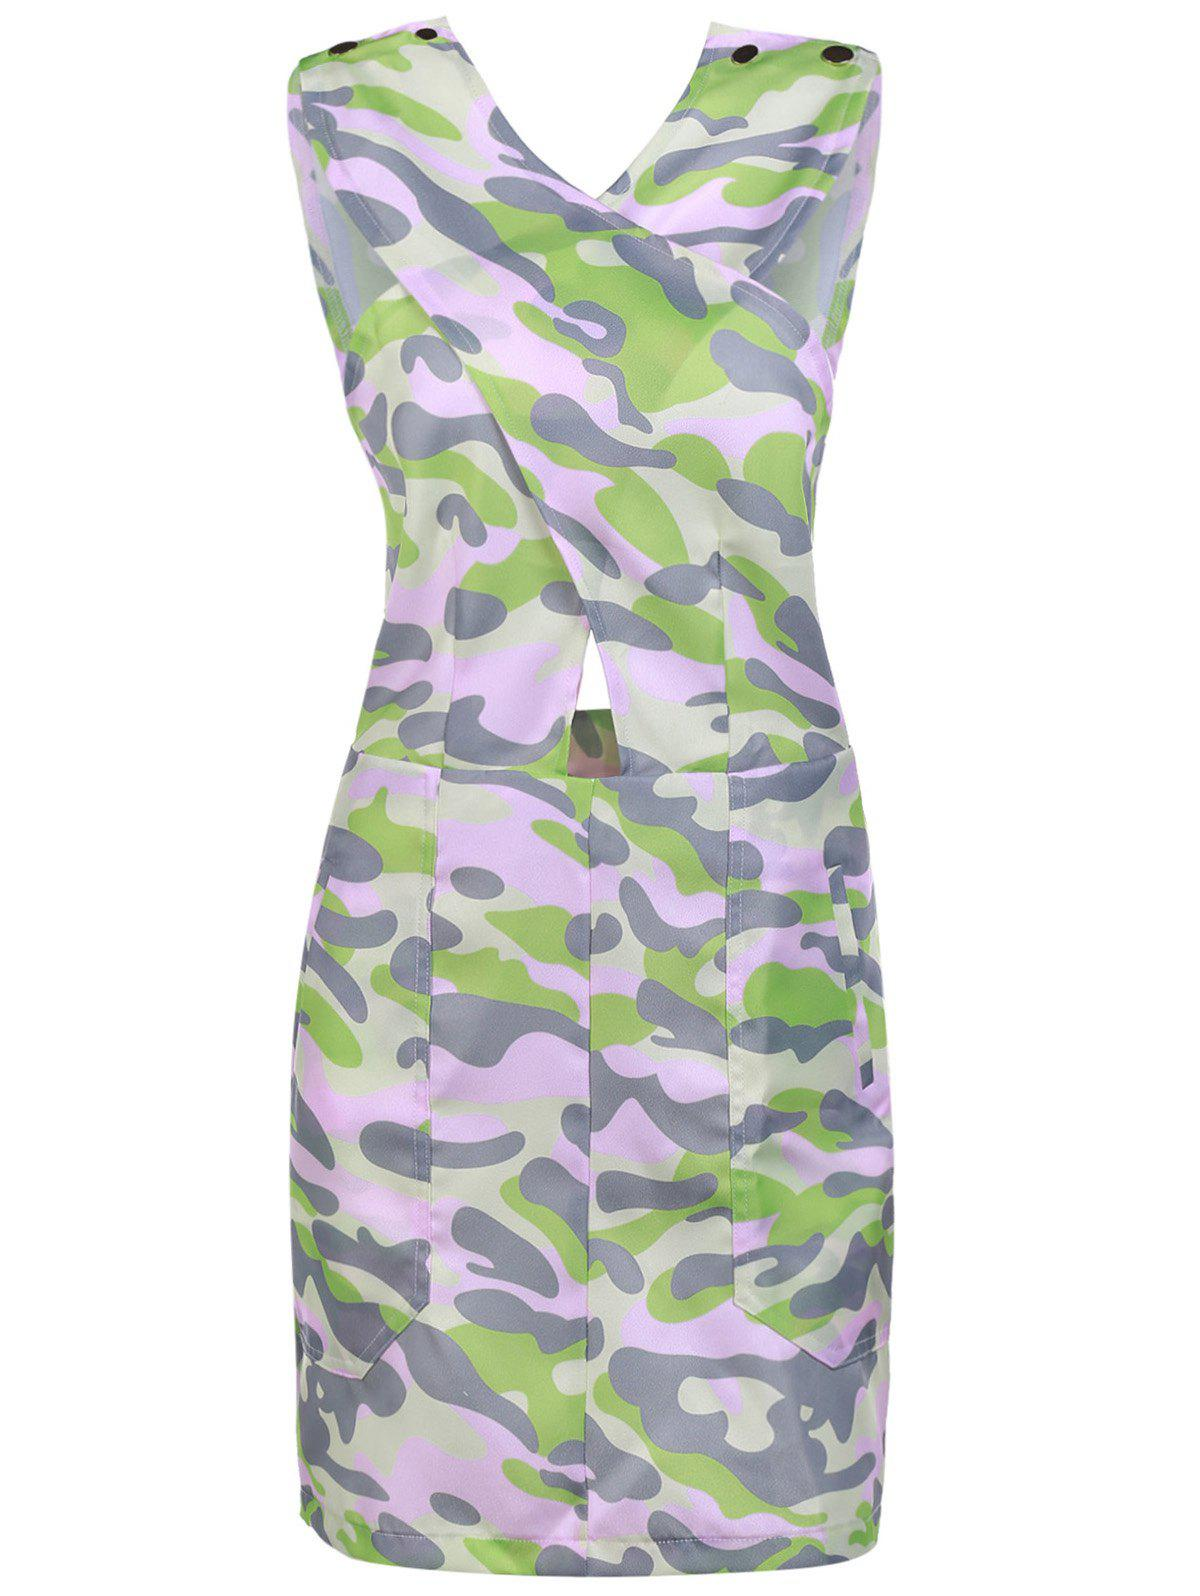 Stylish Buttons Embellished Pink Camo Bodycon Dress For Women